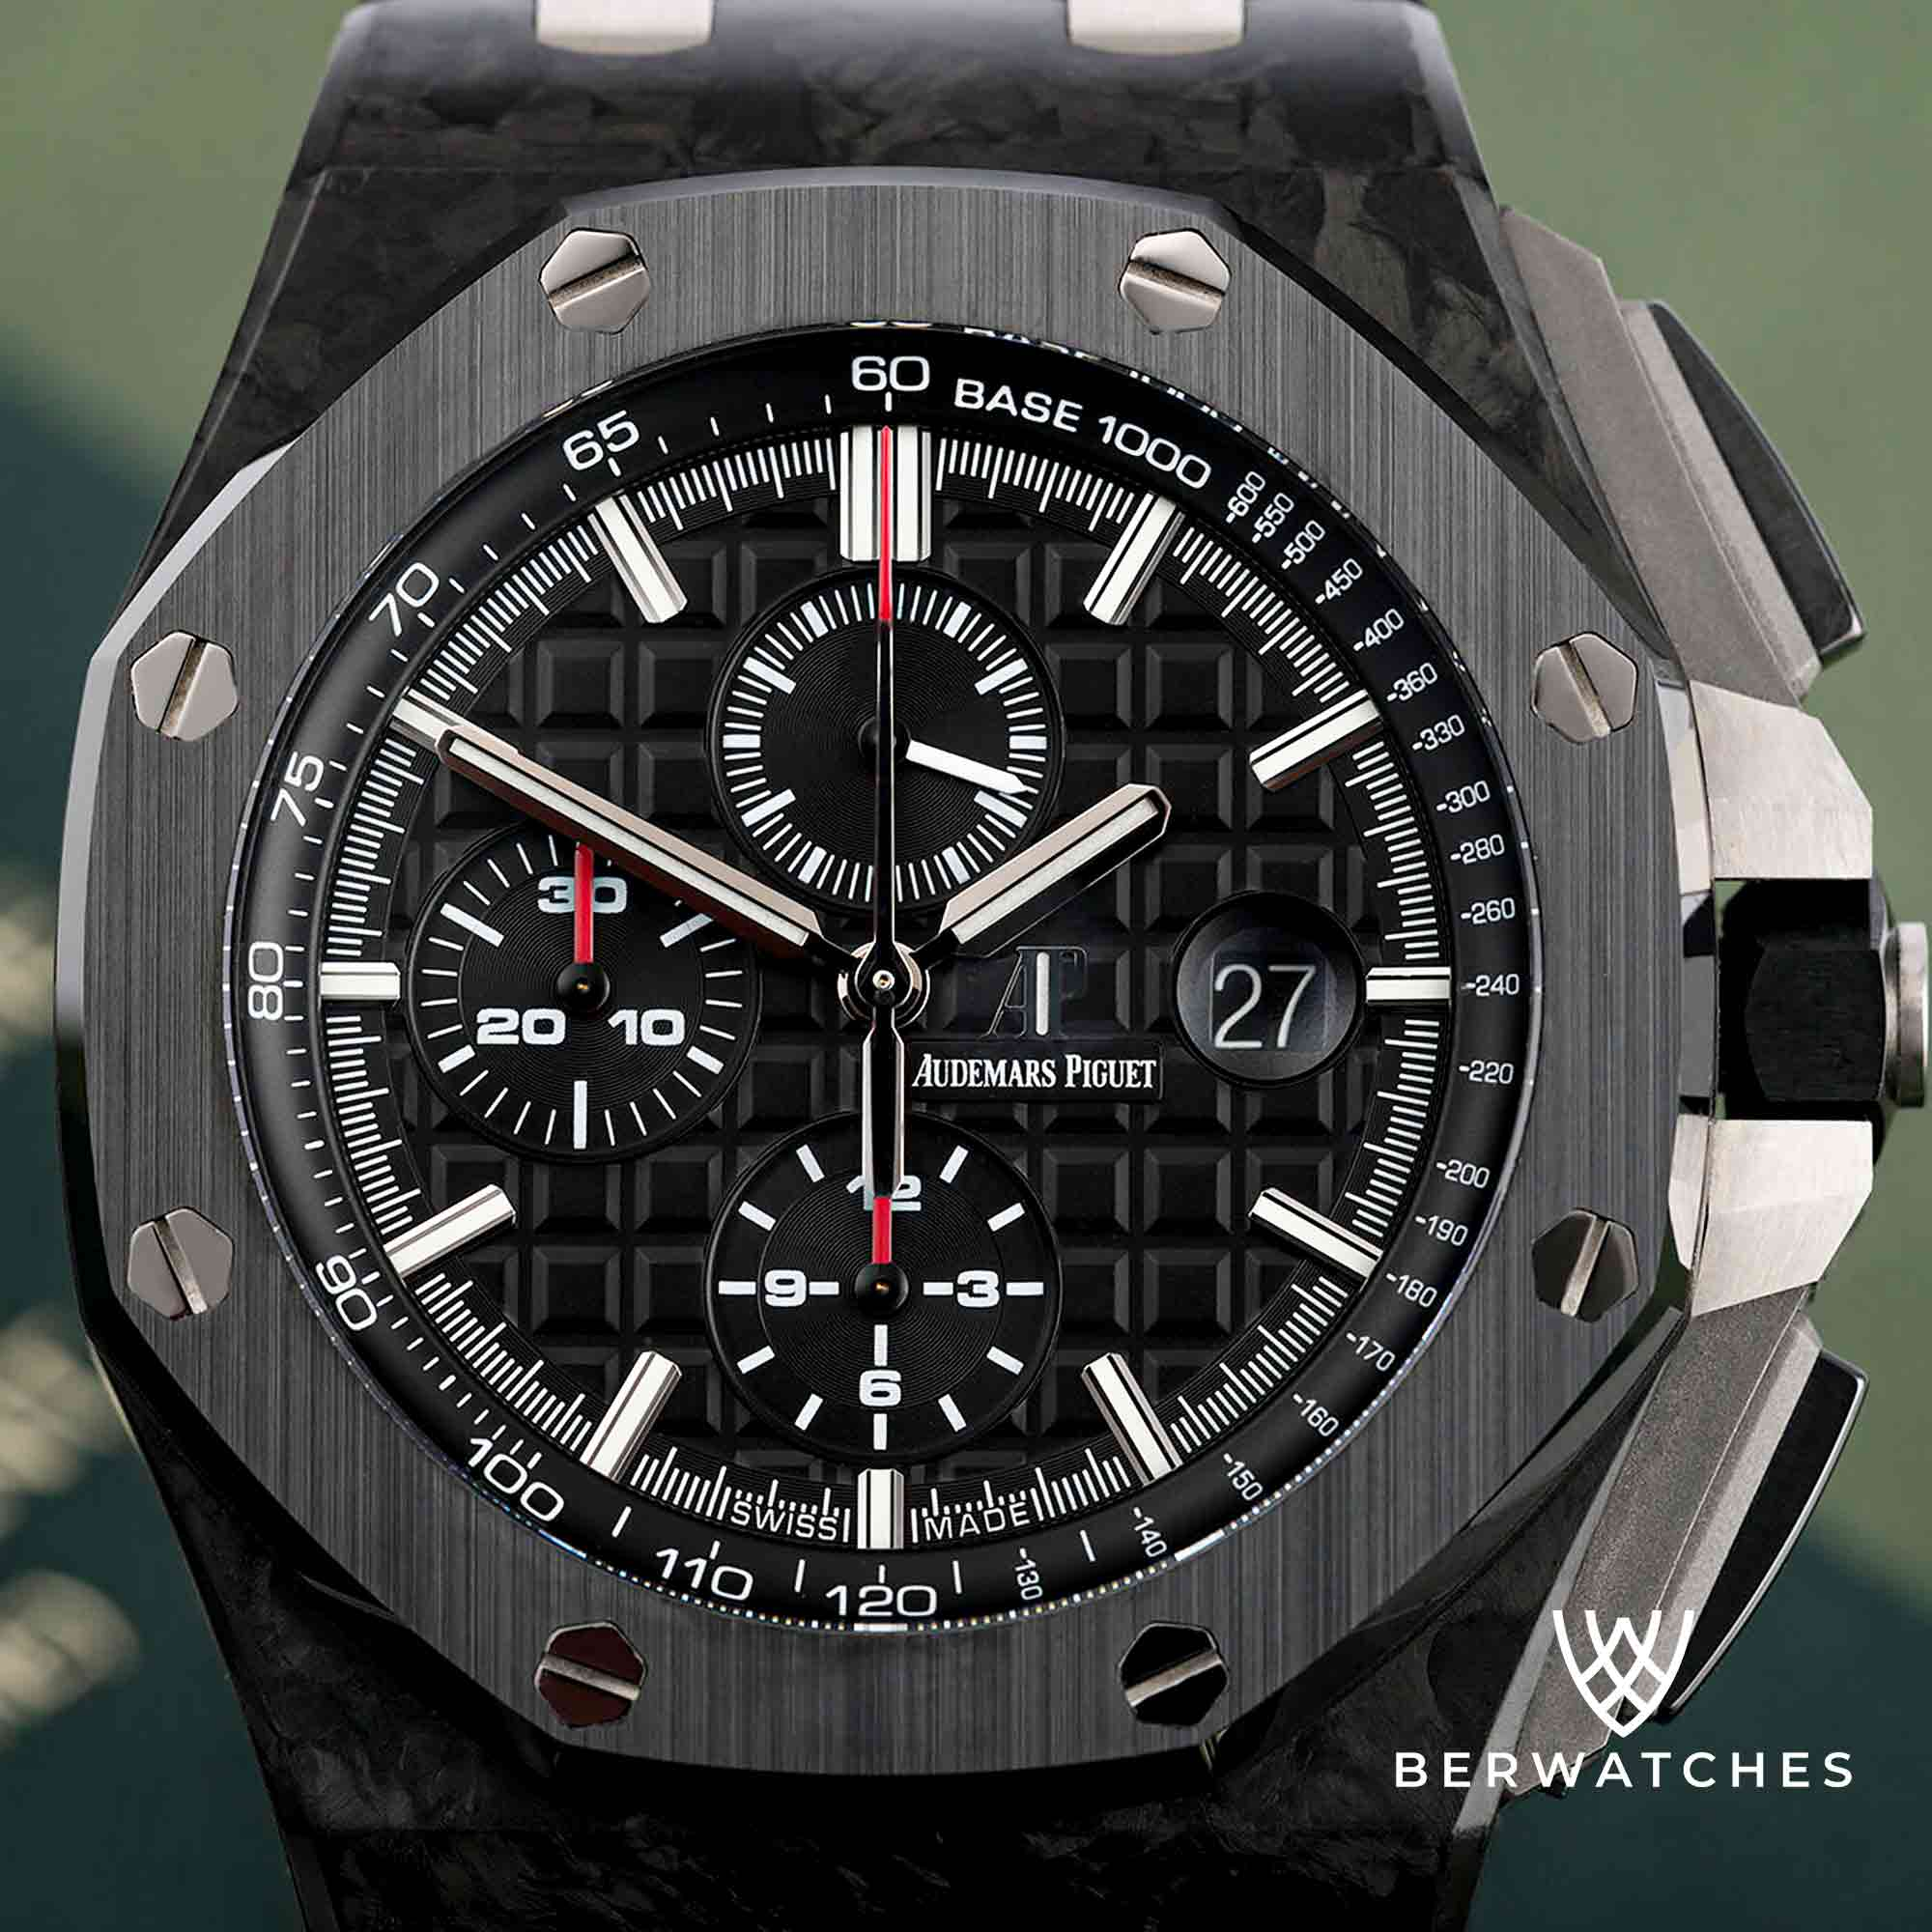 Berwatches.to Reviews